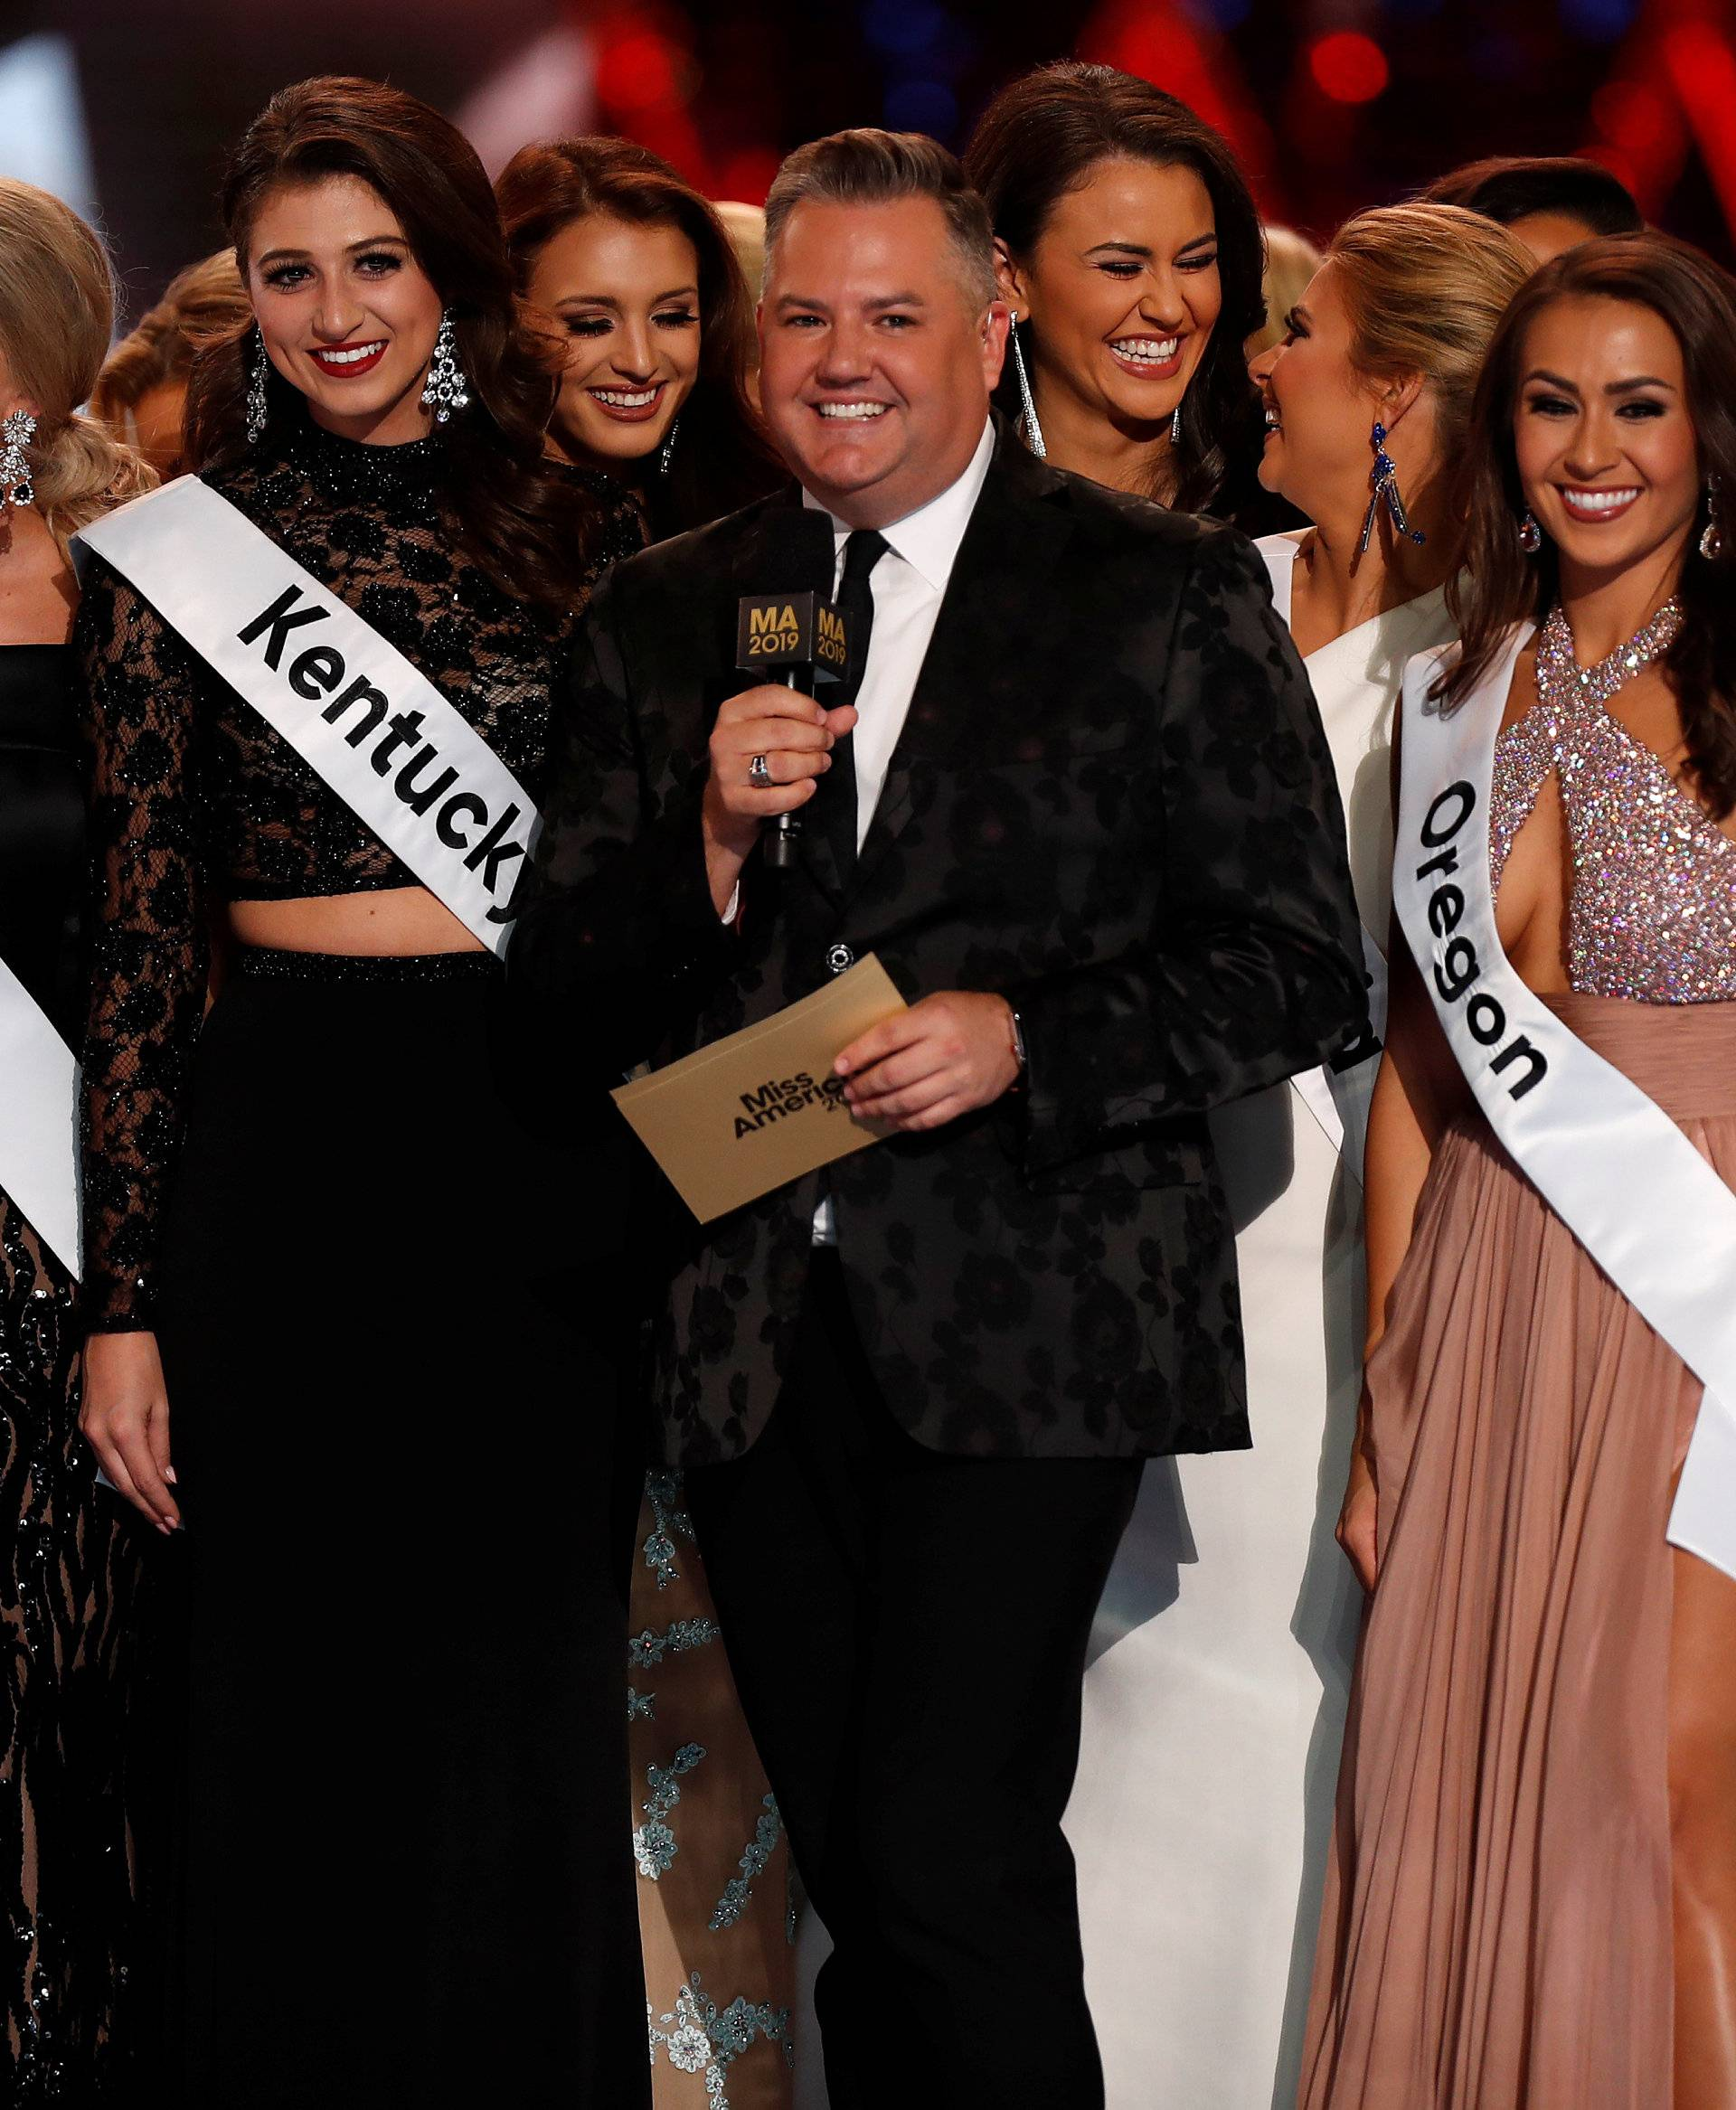 Ross Mathews hosts the Miss America pageant on stage in Atlantic City